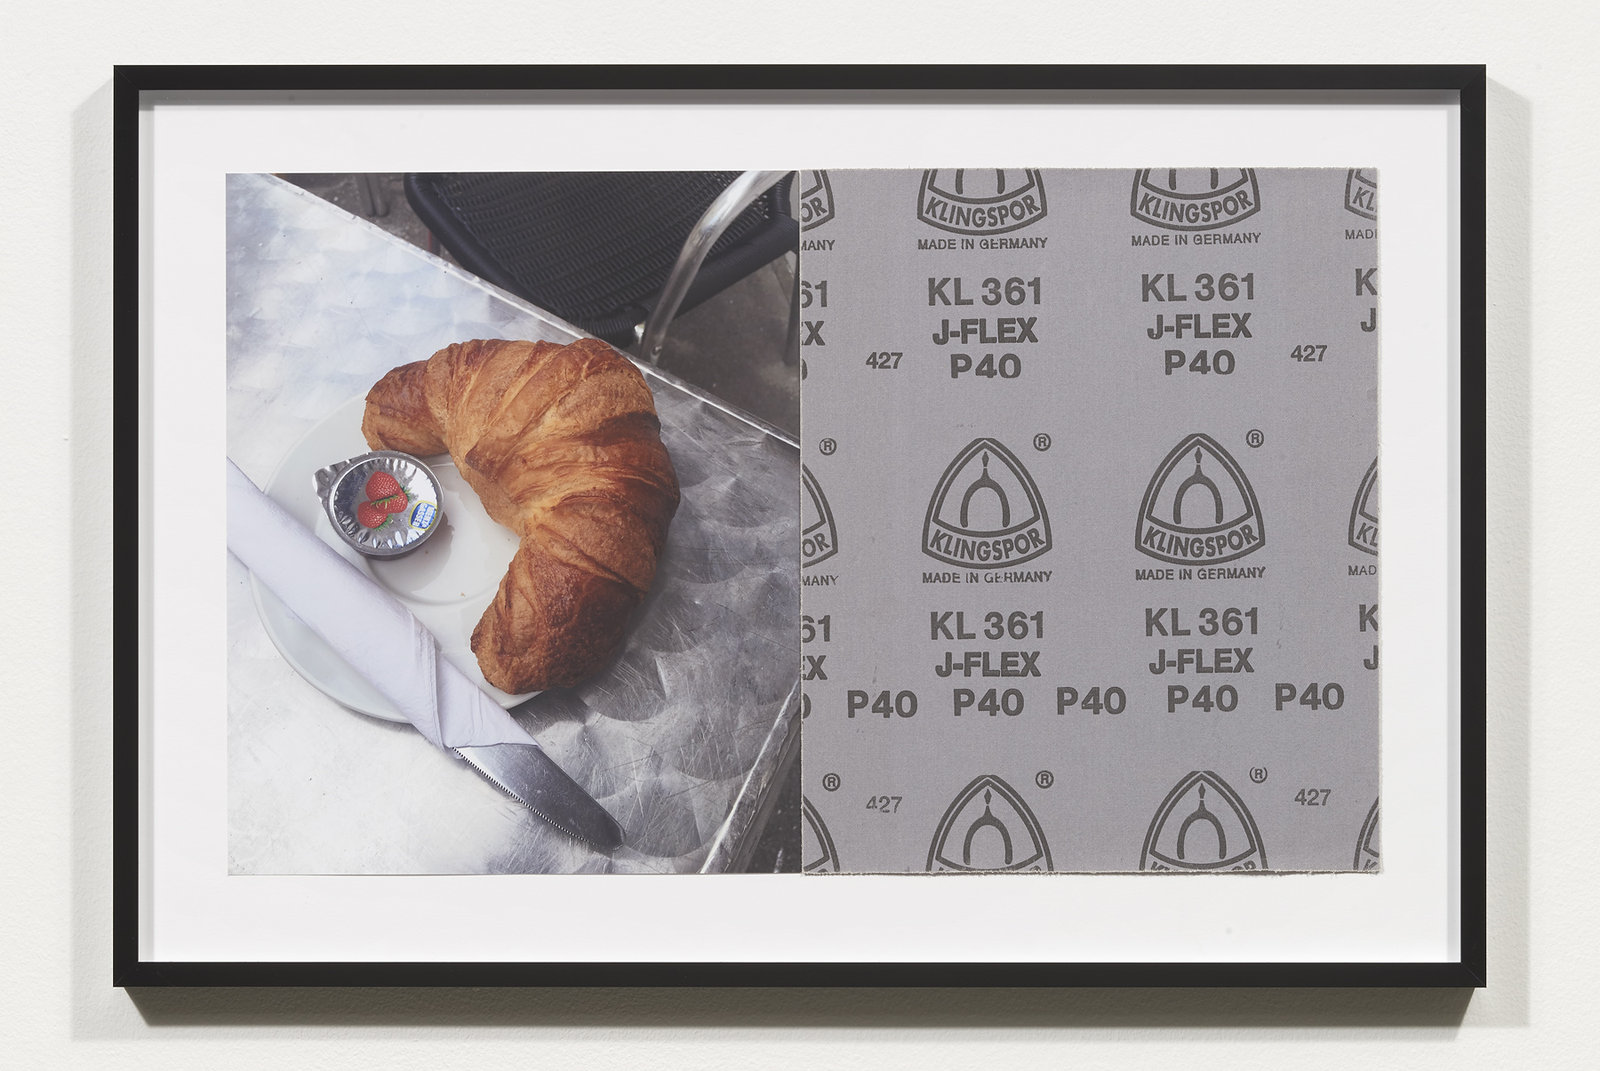 Wermers_Croissants & Architecture #23, 2016_C-print, sandpaper sheet, framed_14 3_8 x 21 1_2 in_NW00064PG